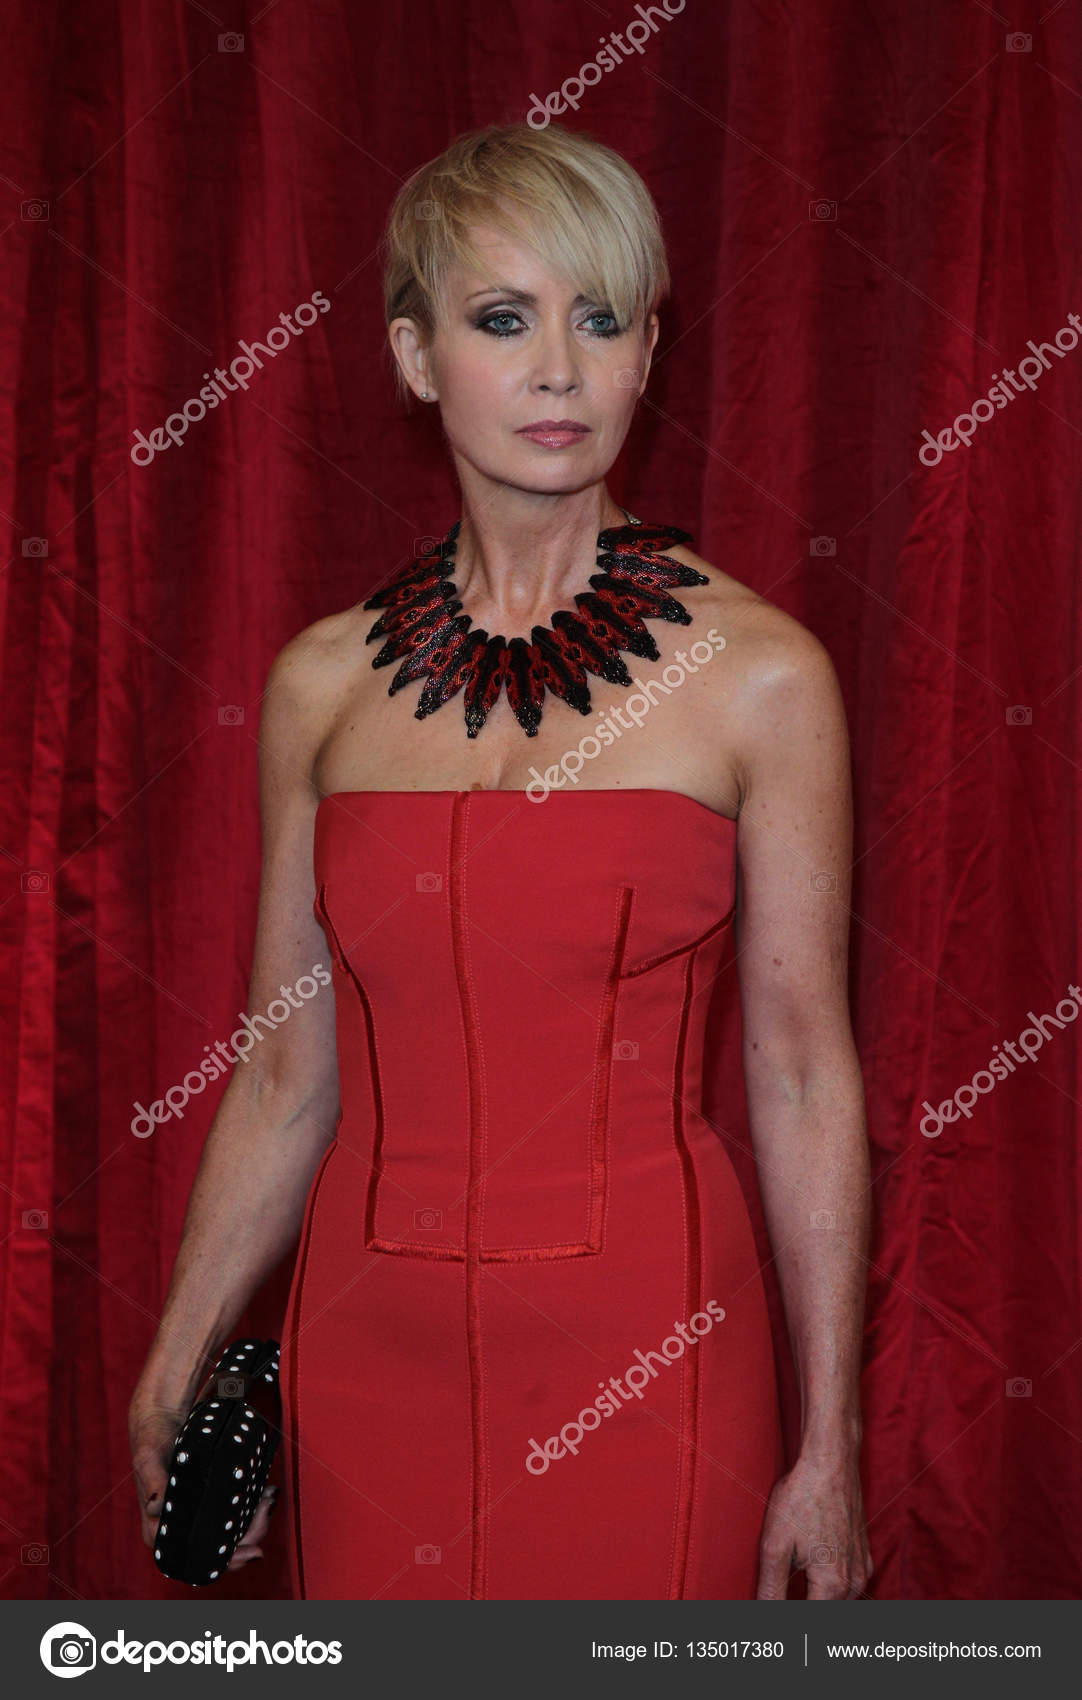 Lysette Anthony Lysette Anthony new images